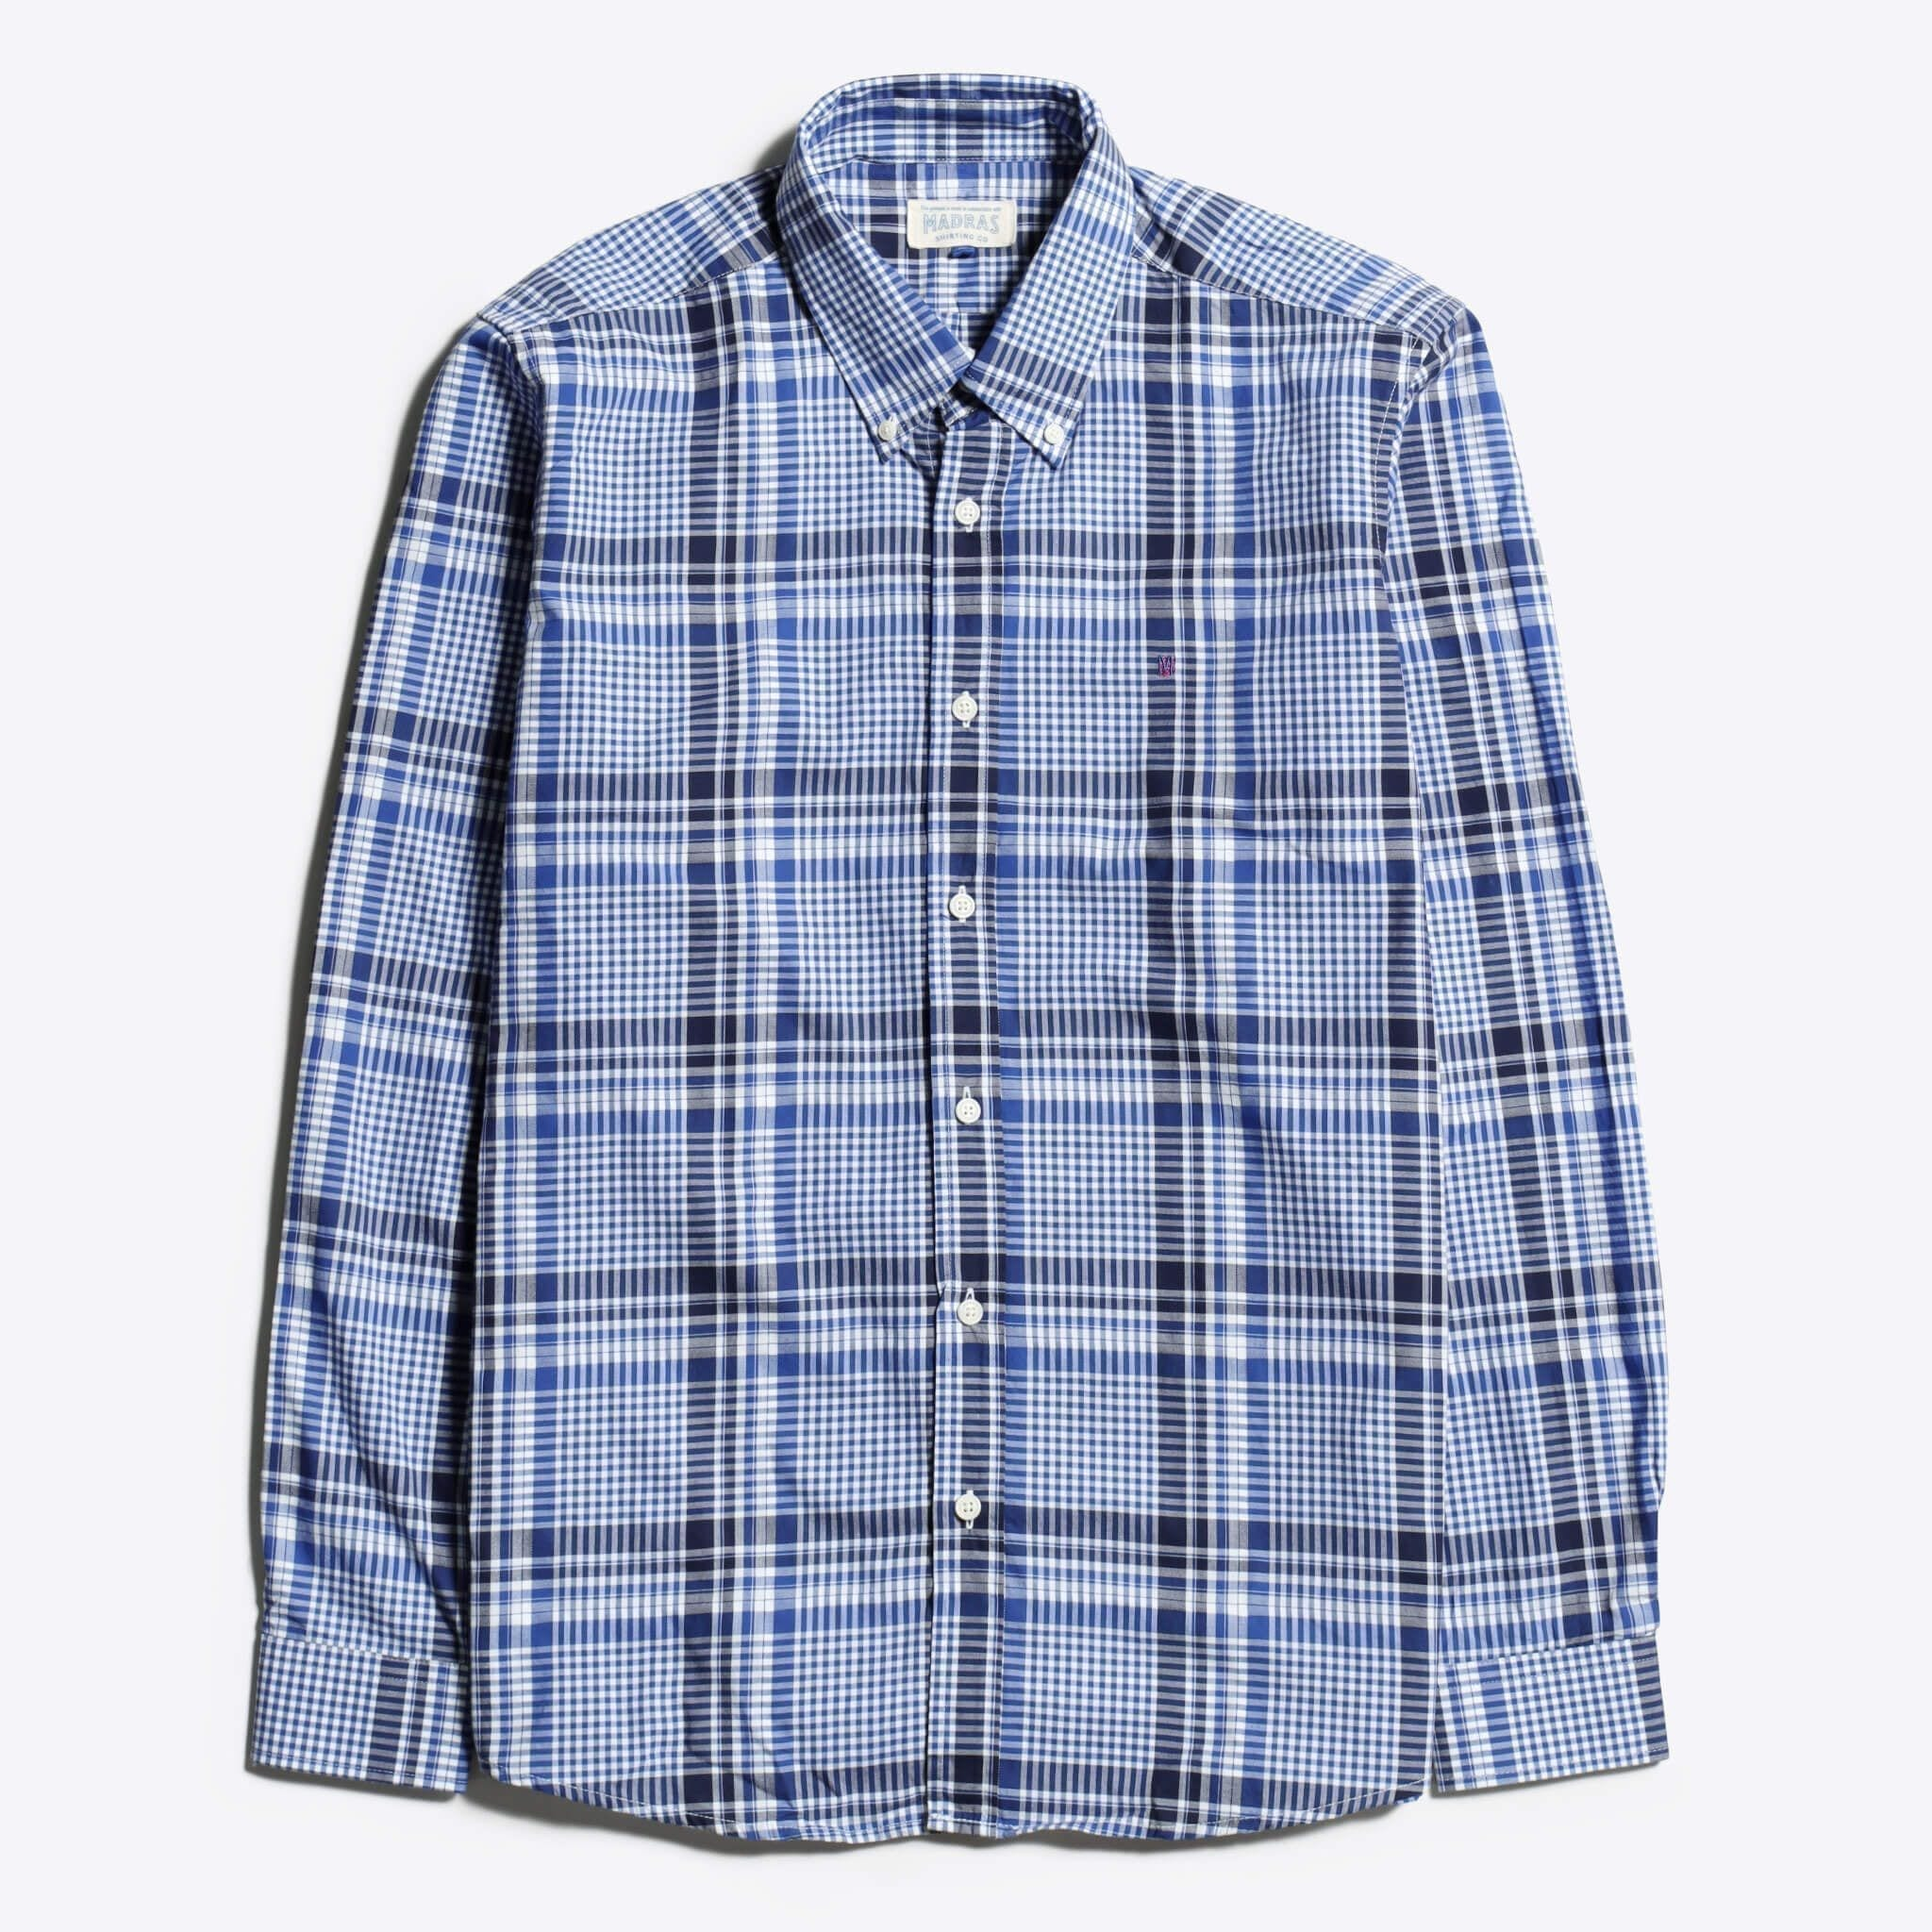 Madras Shirting Co' Mod Button Down Long Sleeve Shirt a Blue Check Cotton Up-Cycled Fabric Classic Check Smart Casual